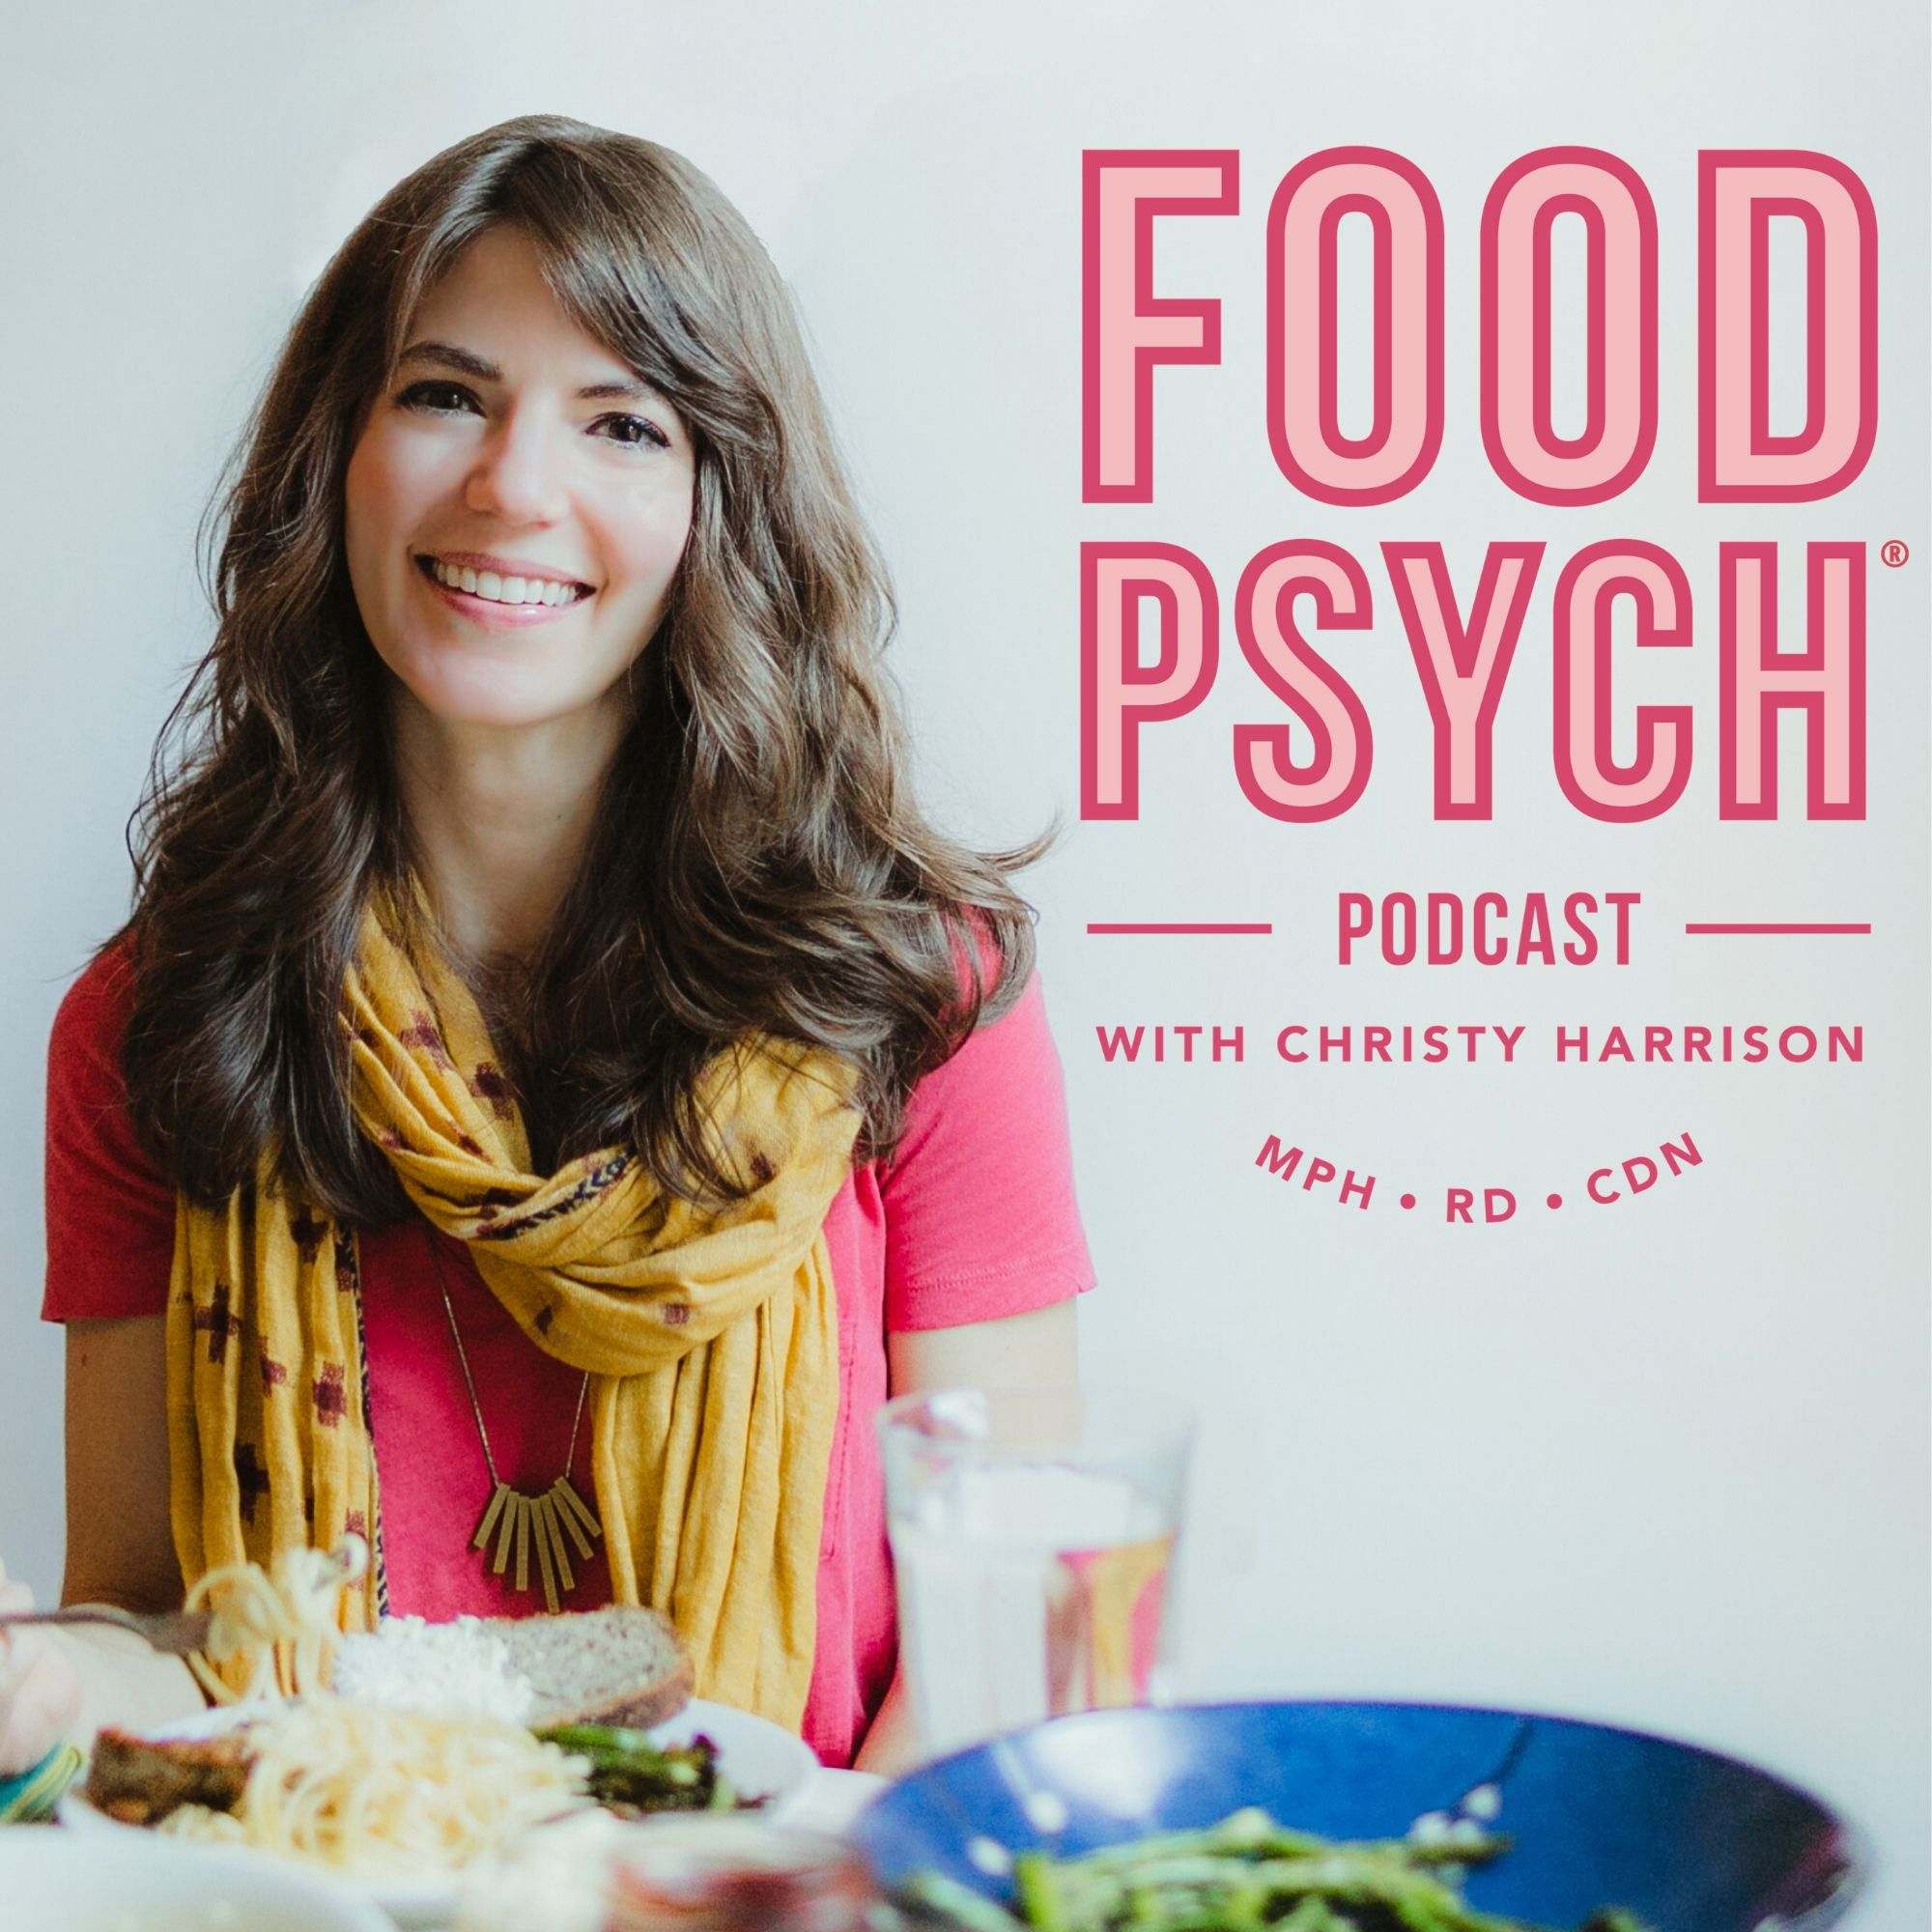 Food Psych Podcast with Christy Harrison show art